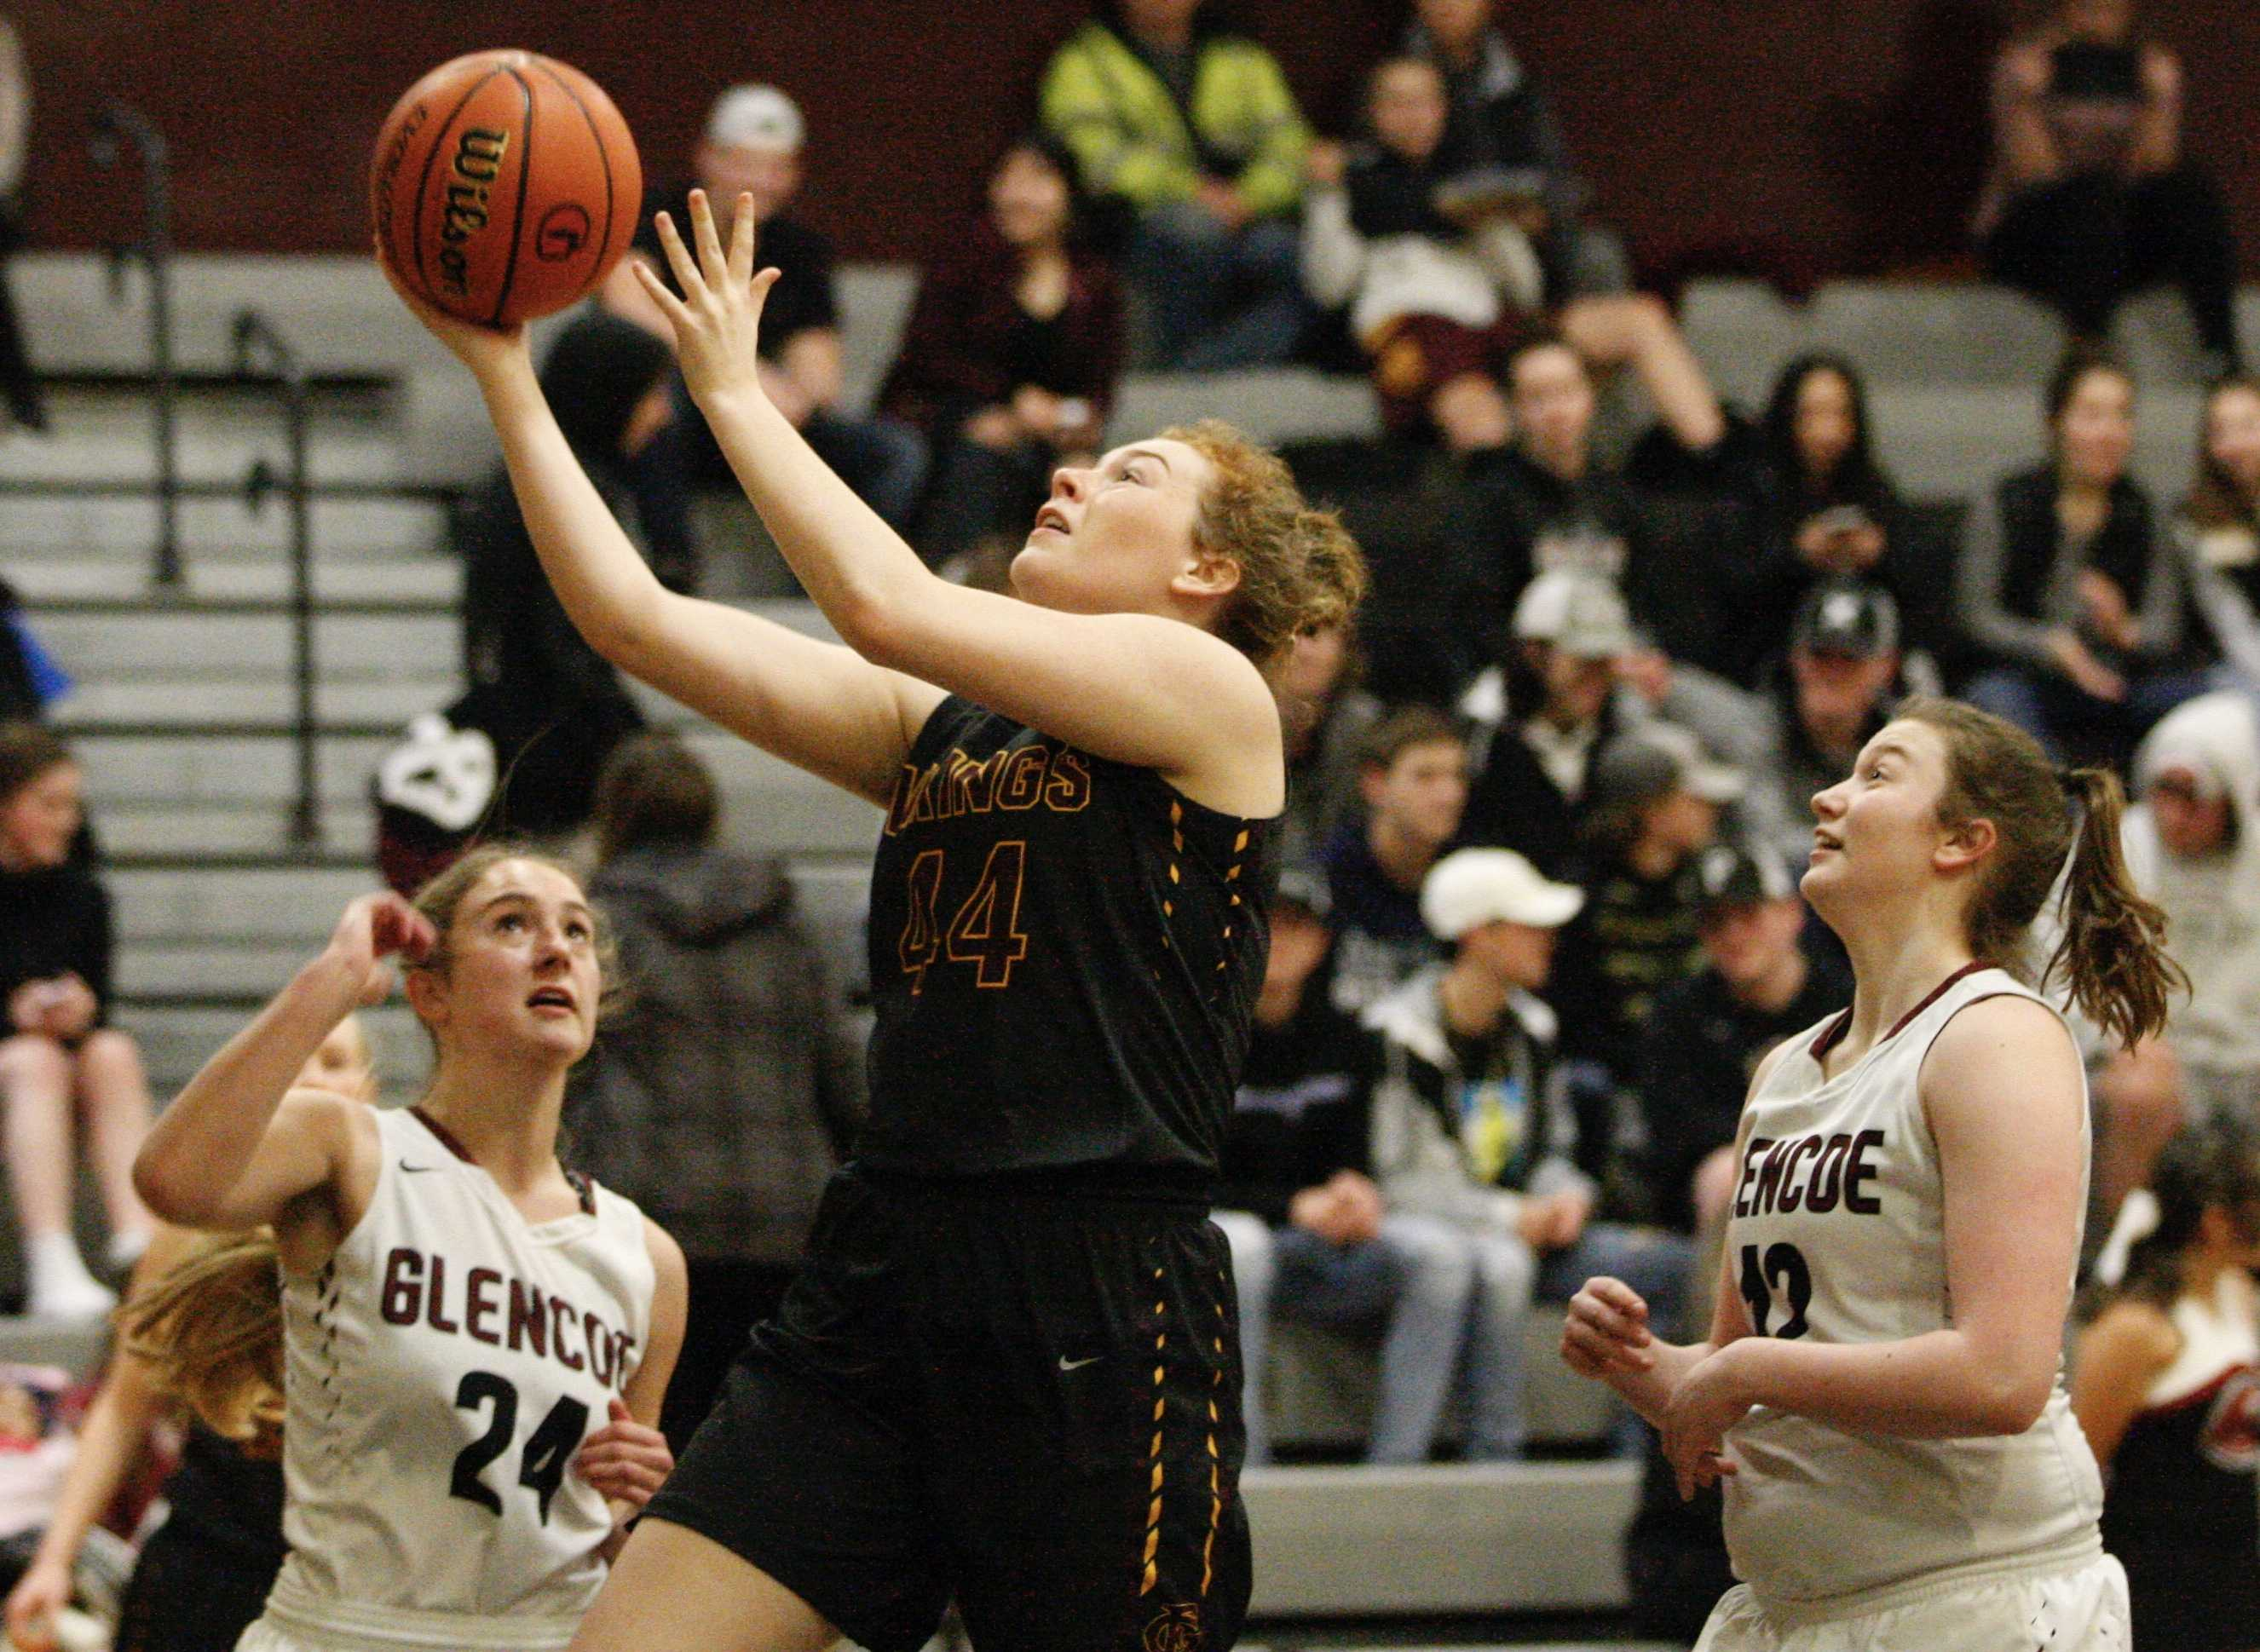 Forest Grove's Olivia Grosse gets between Breauna Van Dyke and Briana Ball of Glencoe for two of her nine points.